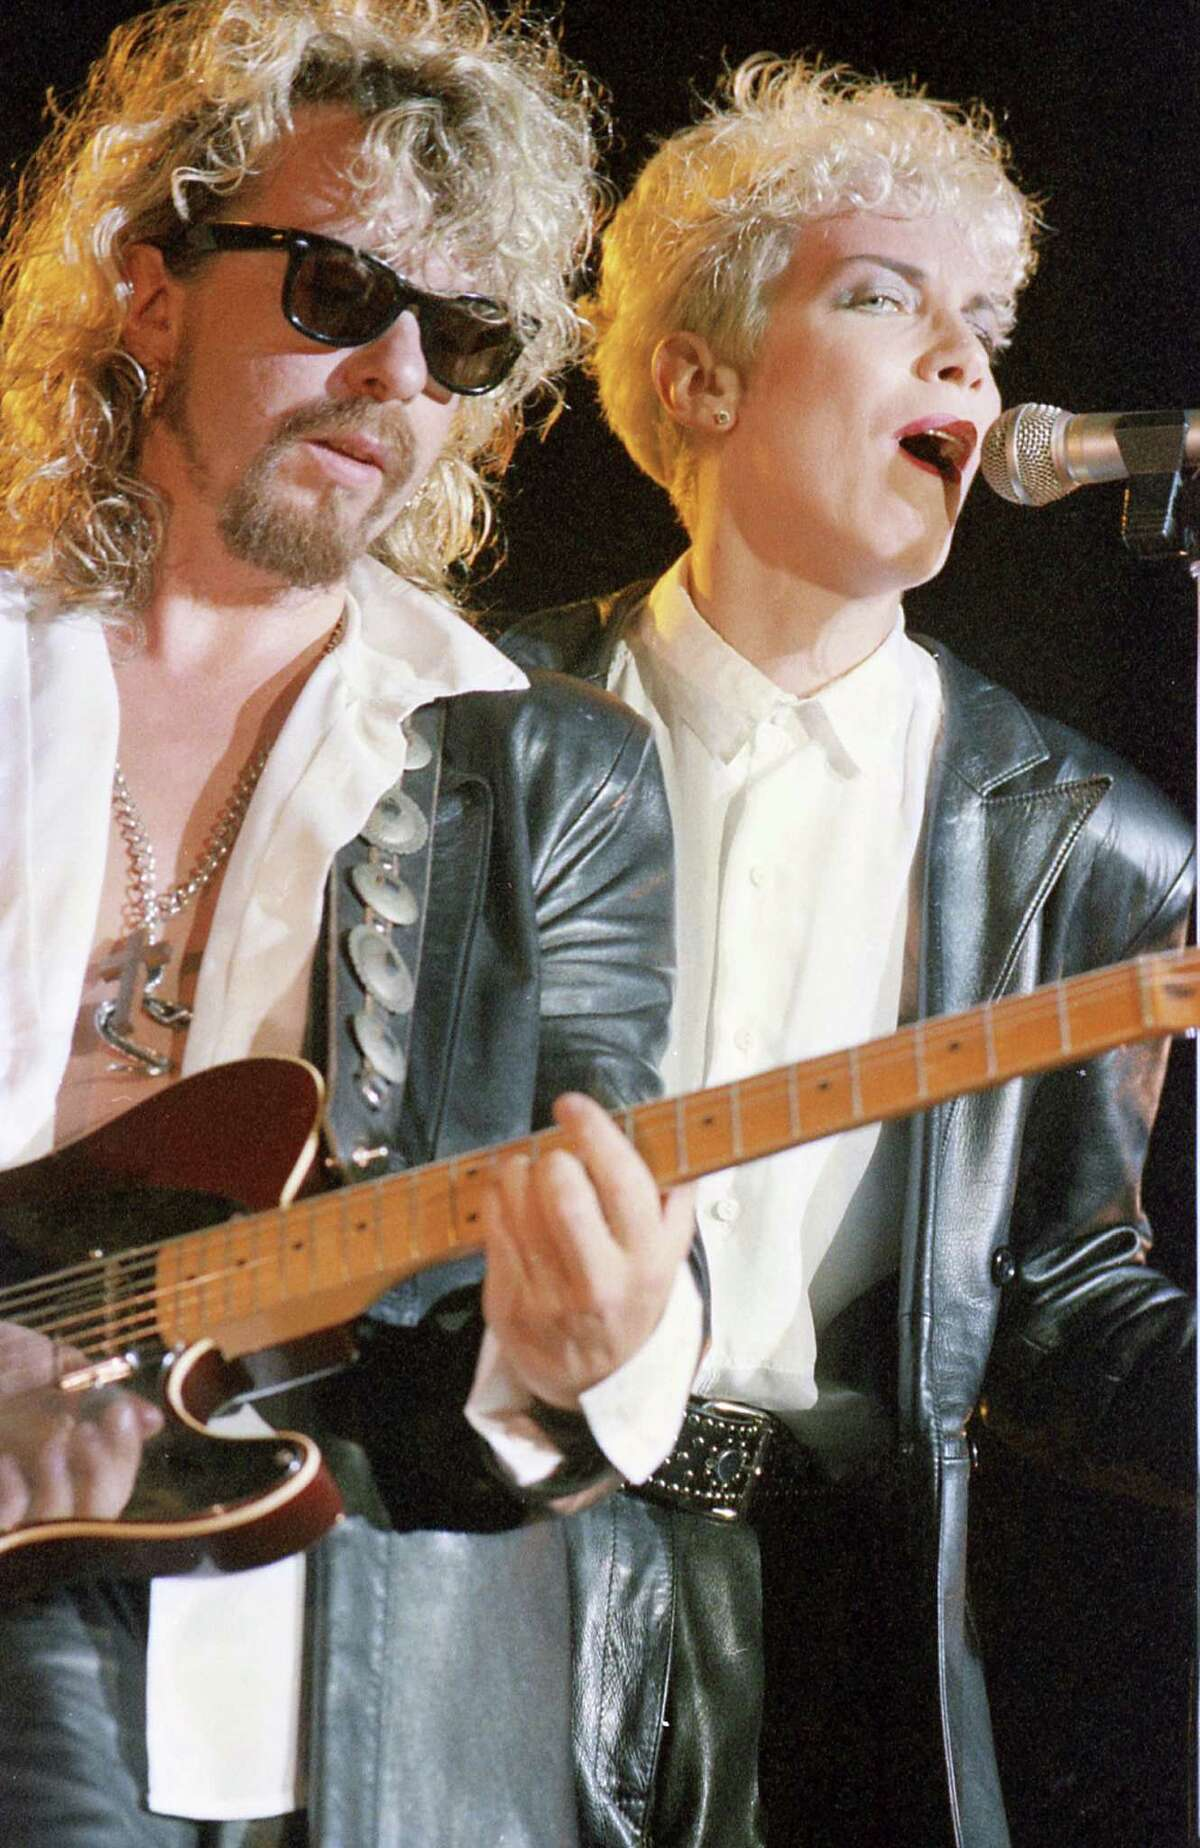 The Eurythmics, 1986 at Southern Star Amphitheater at Astroworld- Paula S.